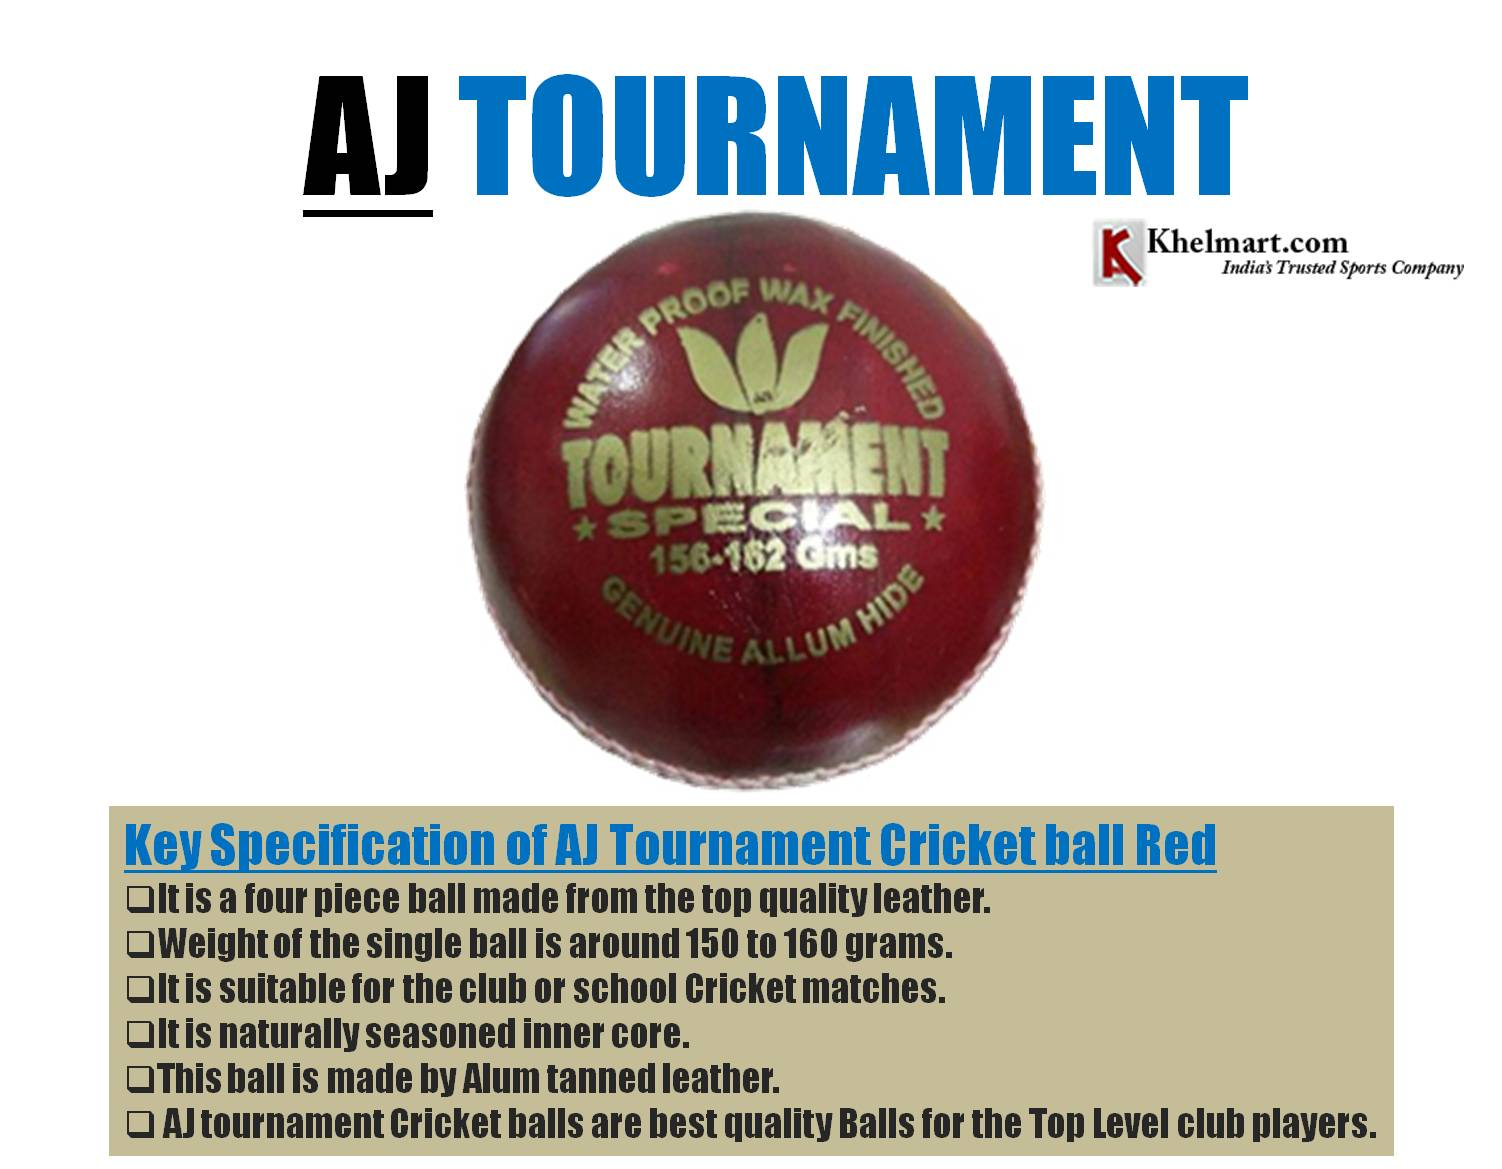 AJ_TOURNAMENT_CRICKET_BALL